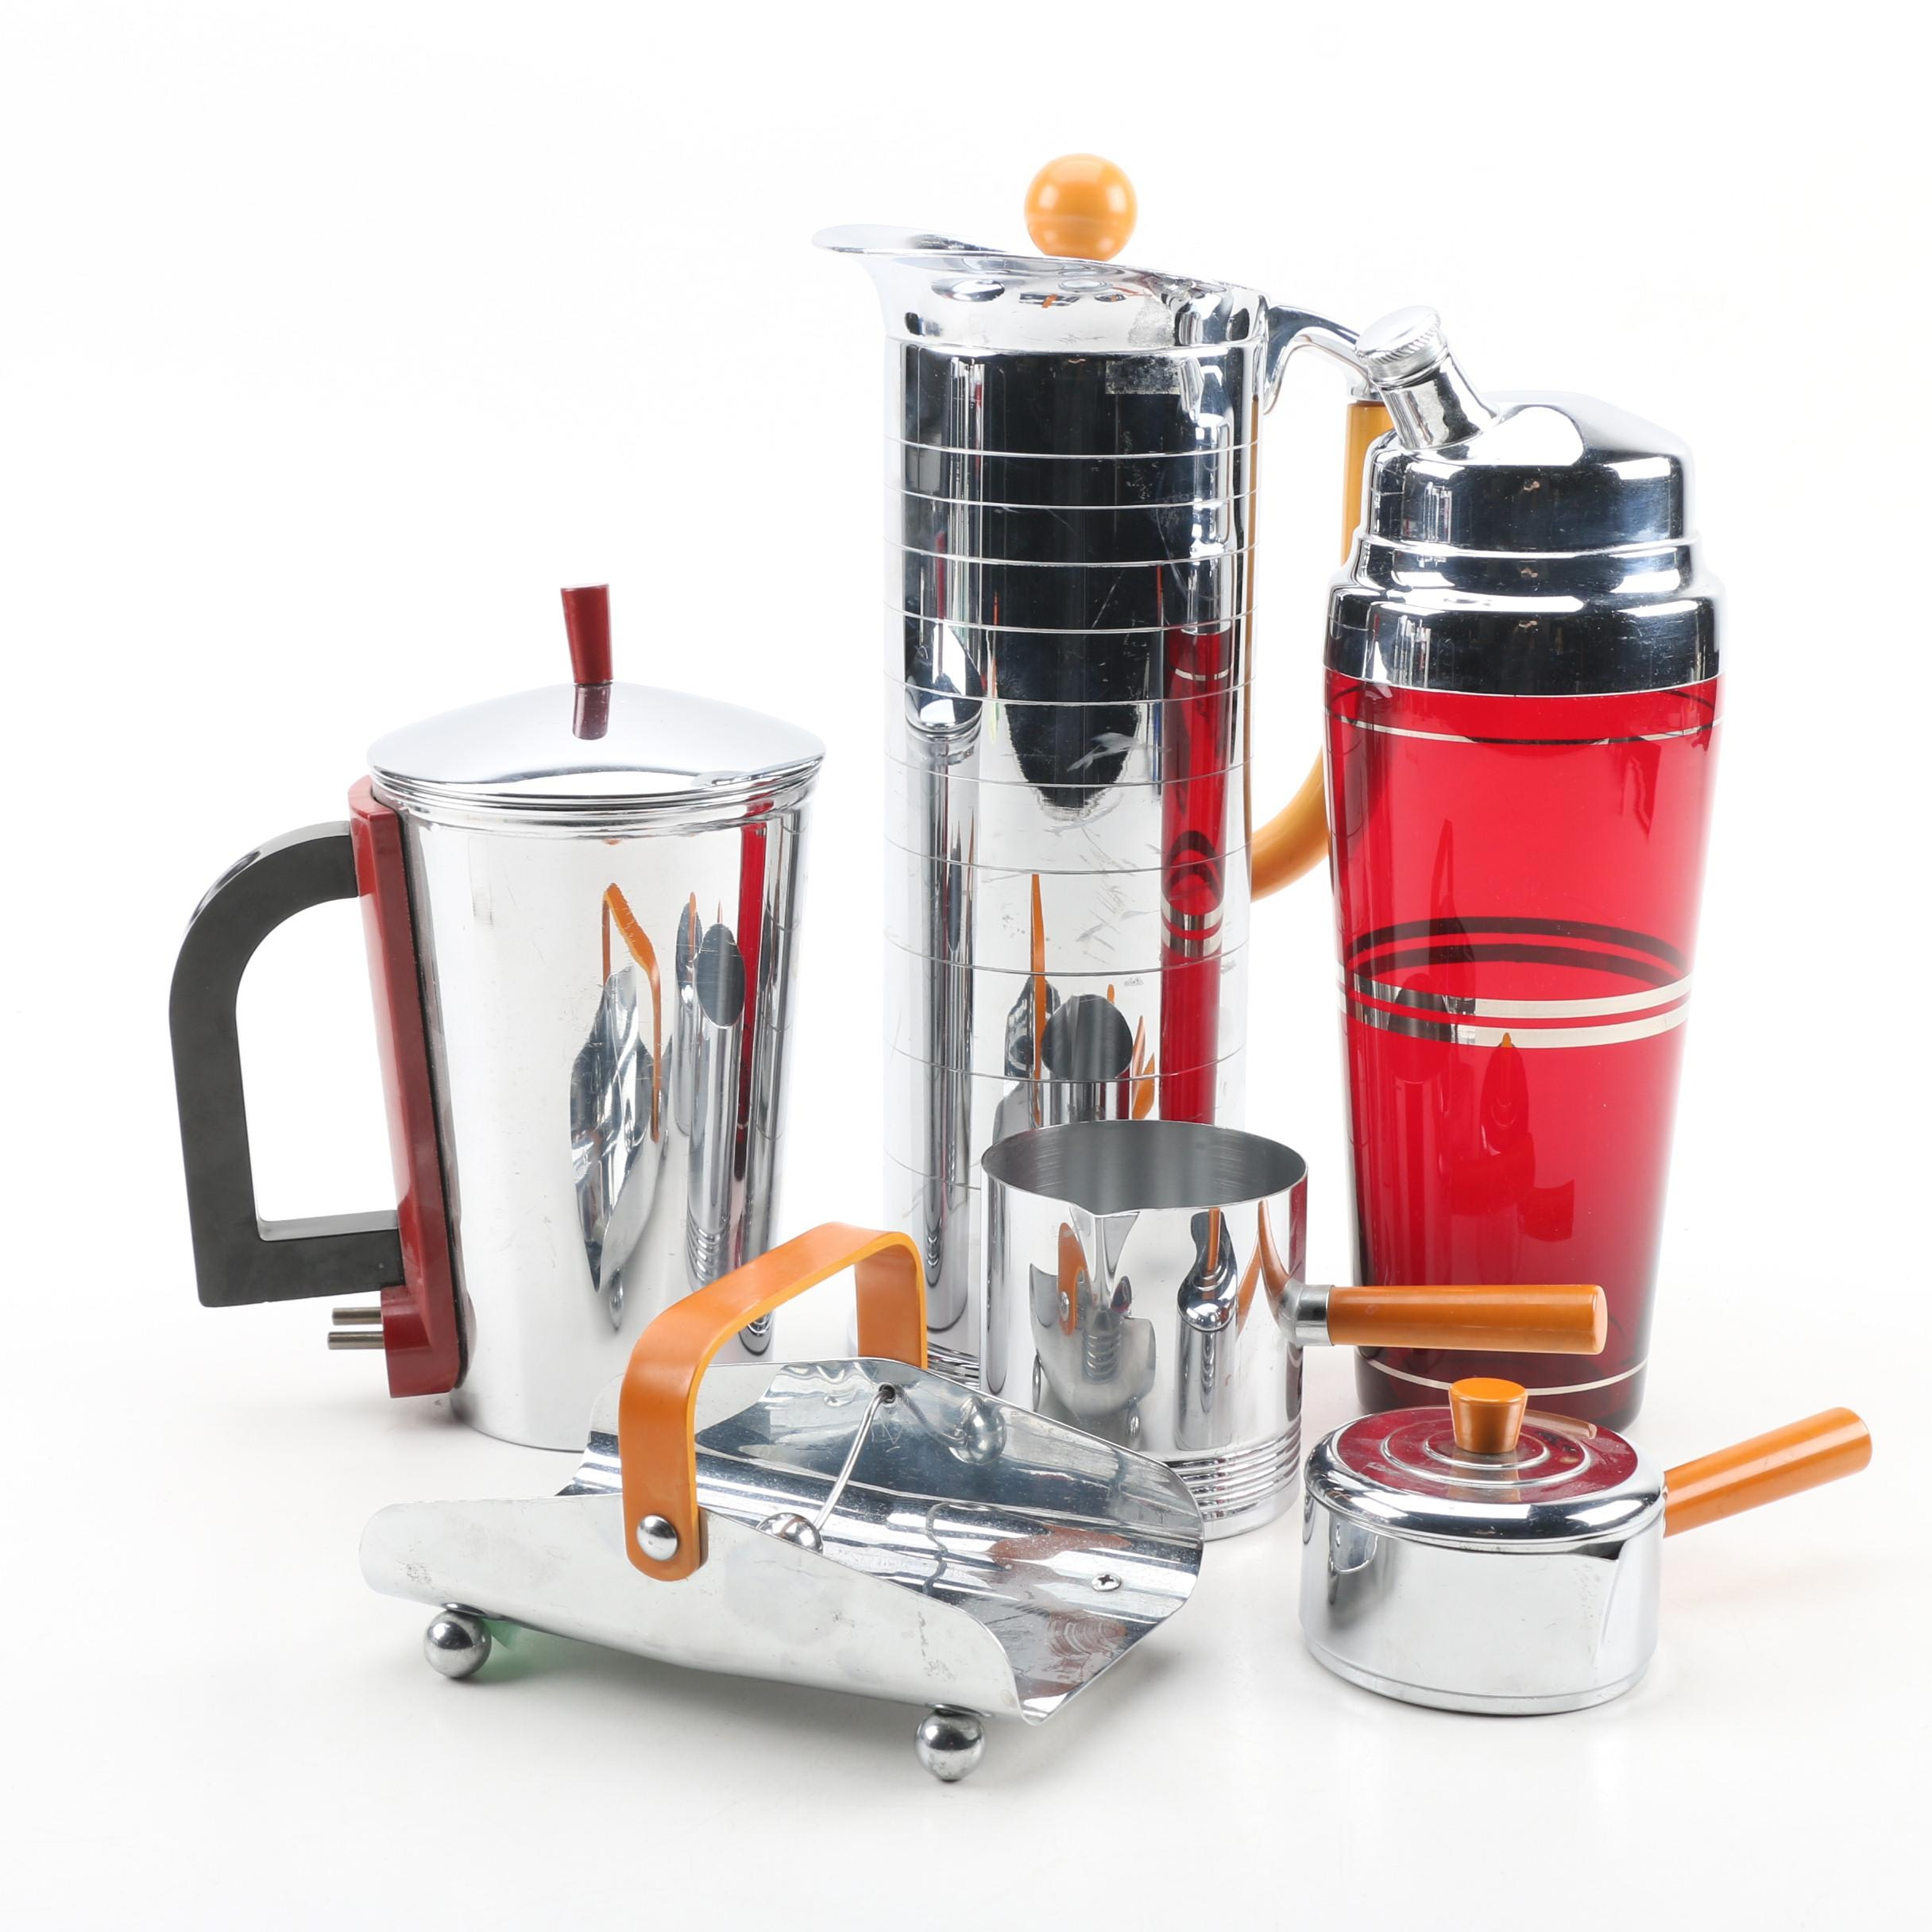 Art Deco Chrome Kitchen Gadgets and Barware by Chase, Manning Bowman, and more